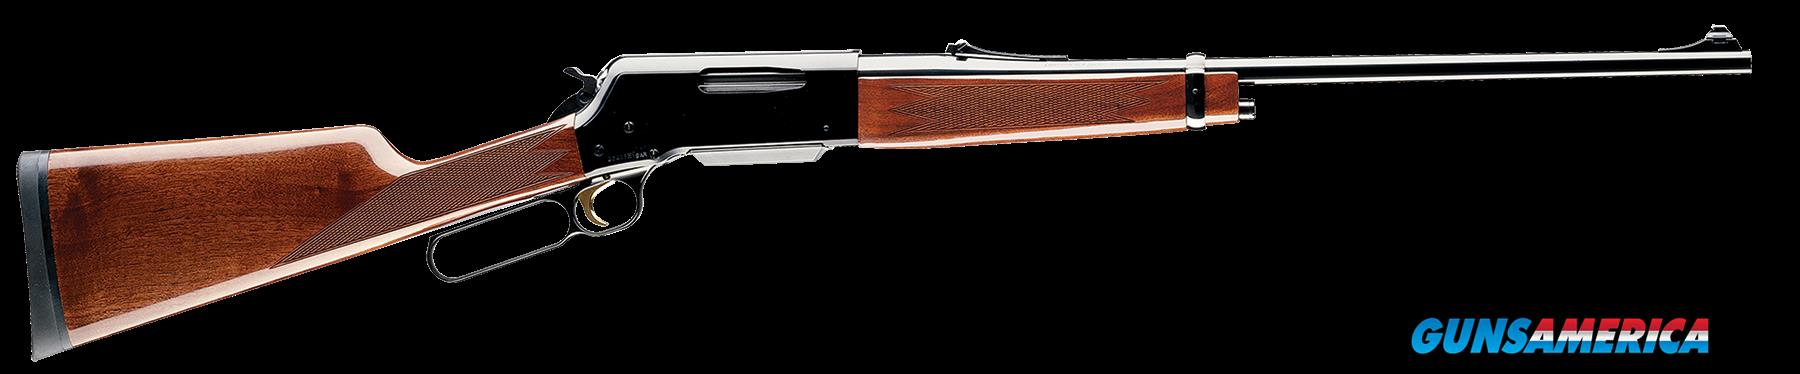 "Browning 034006124 BLR Lightweight 81 Lever 270 Winchester 22"" 4+1 Walnut Stock Blued  Guns > Rifles > B Misc Rifles"